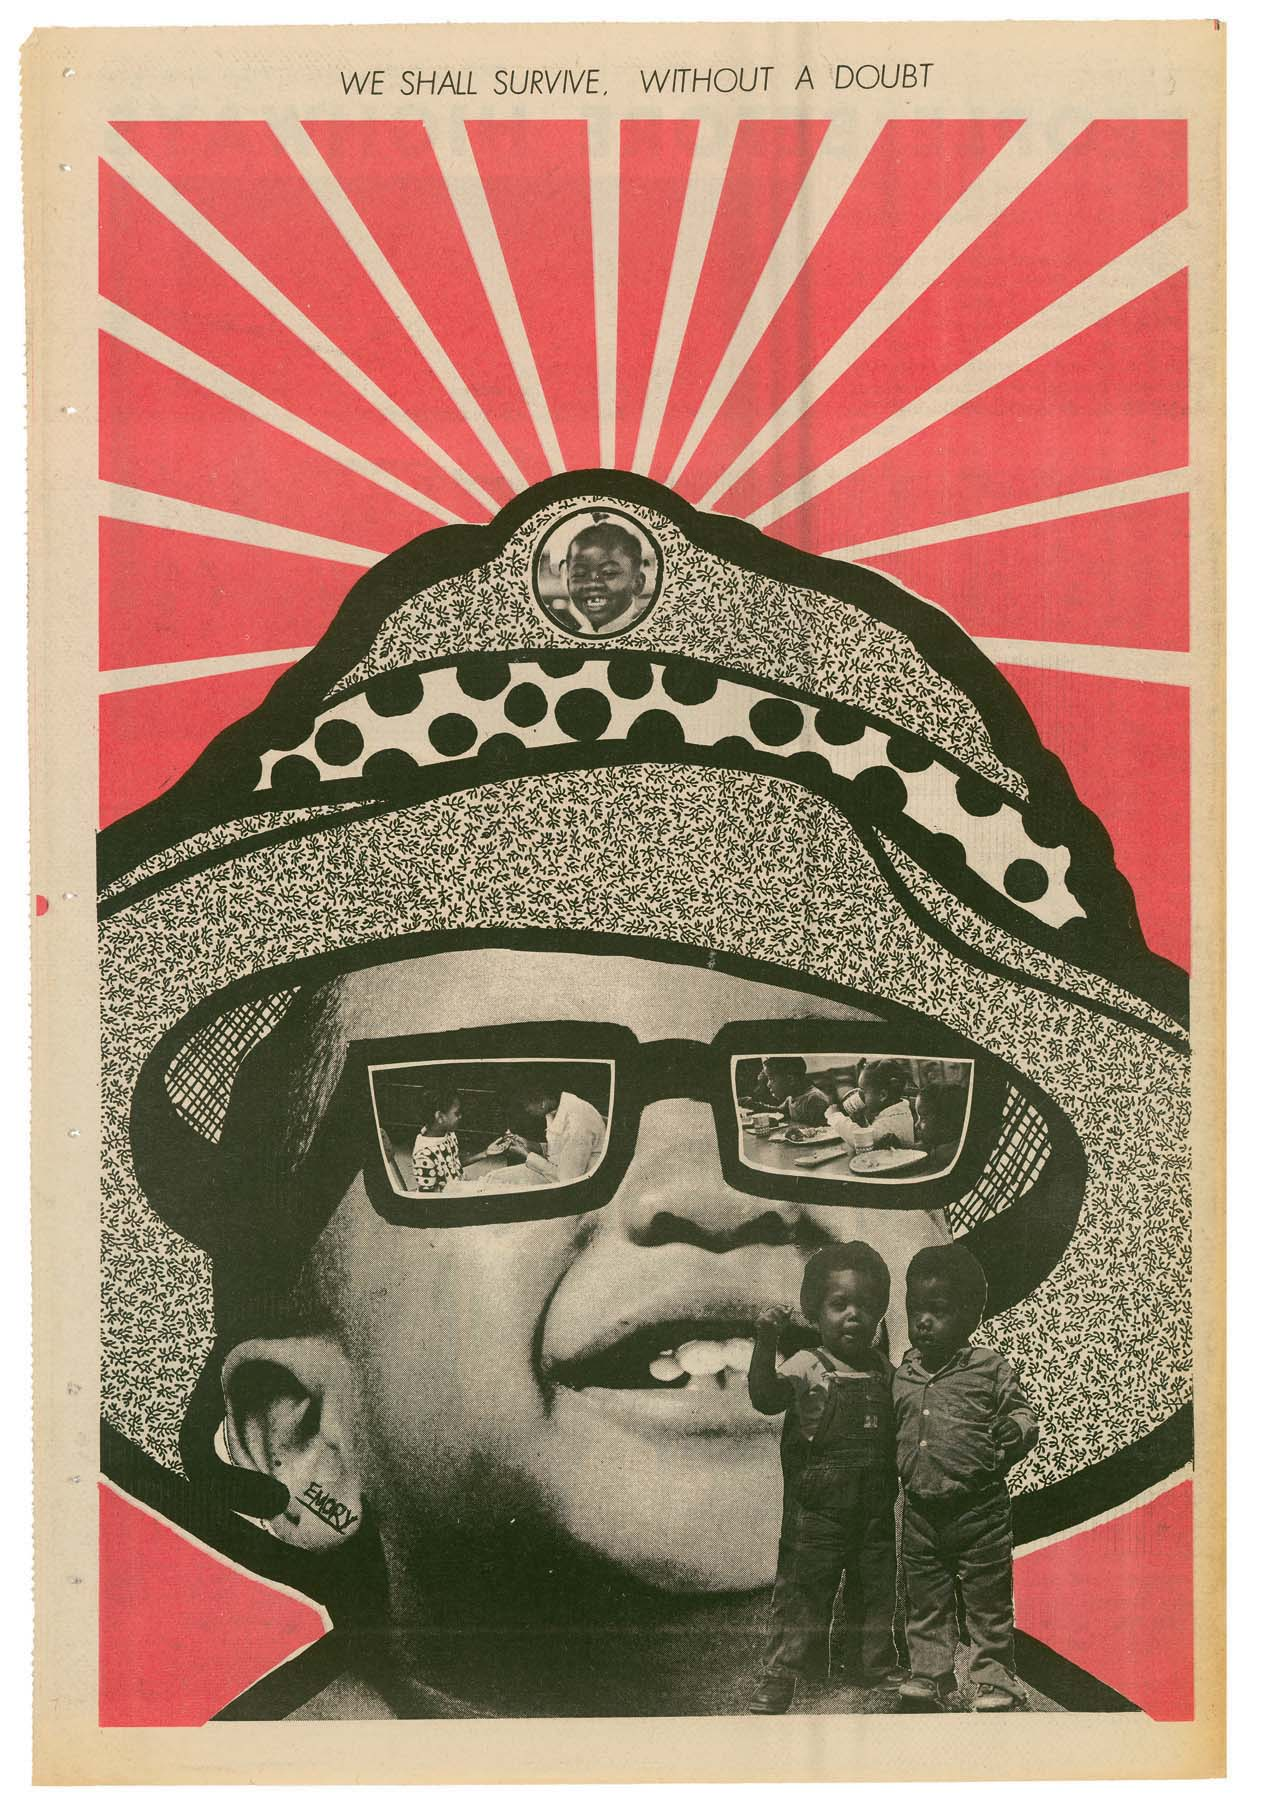 Emory Douglas Artwork | Zinn Education Project: Teaching People's History